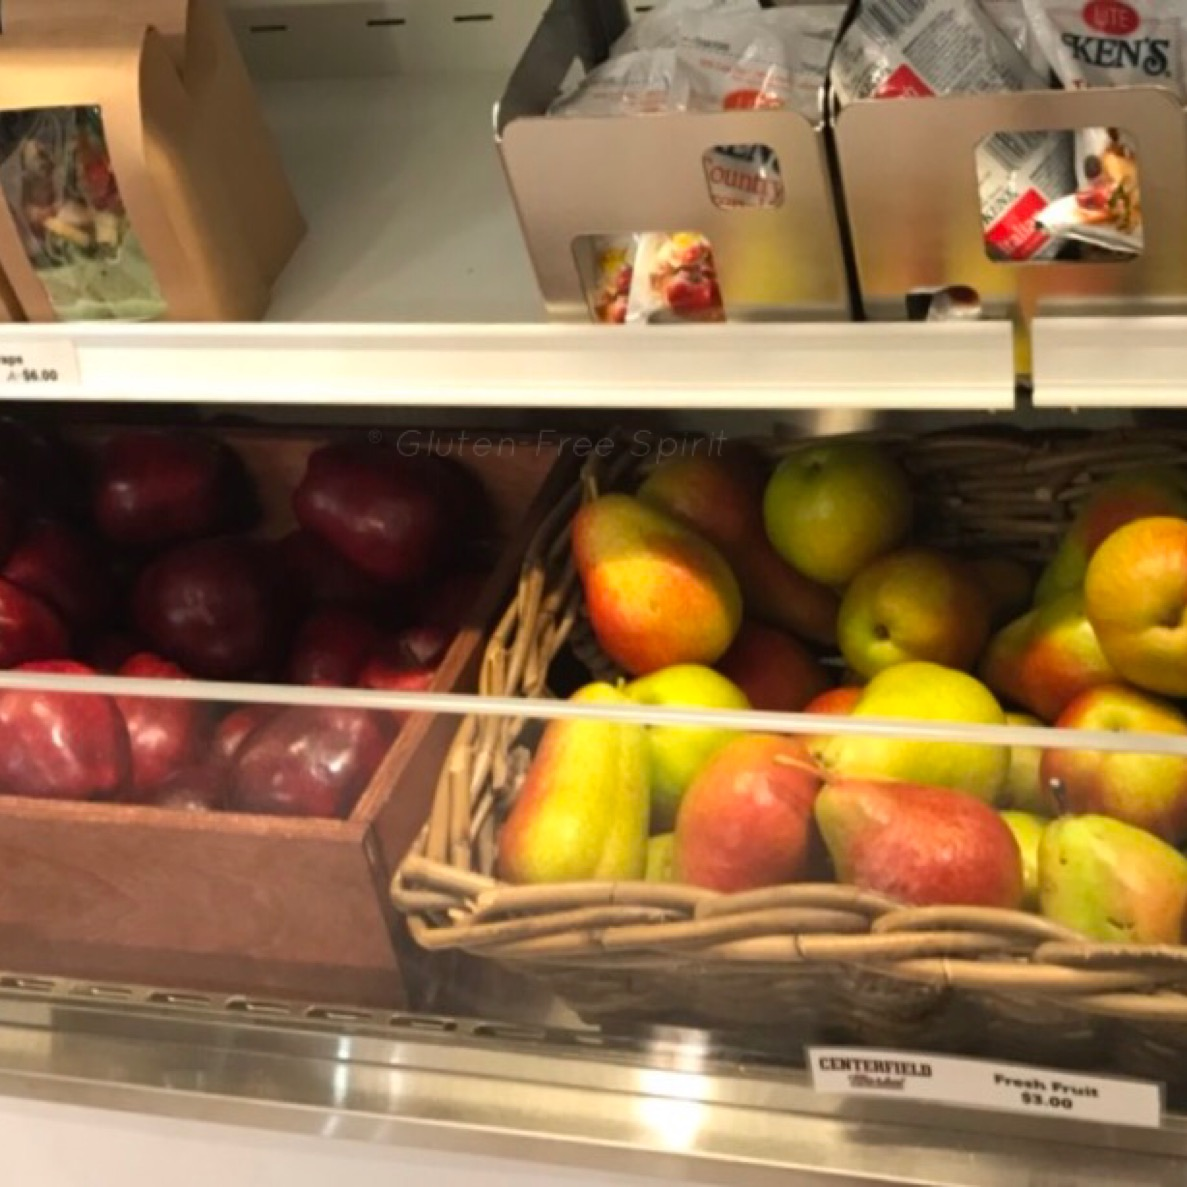 Image of apples and pears at SunTrust Park